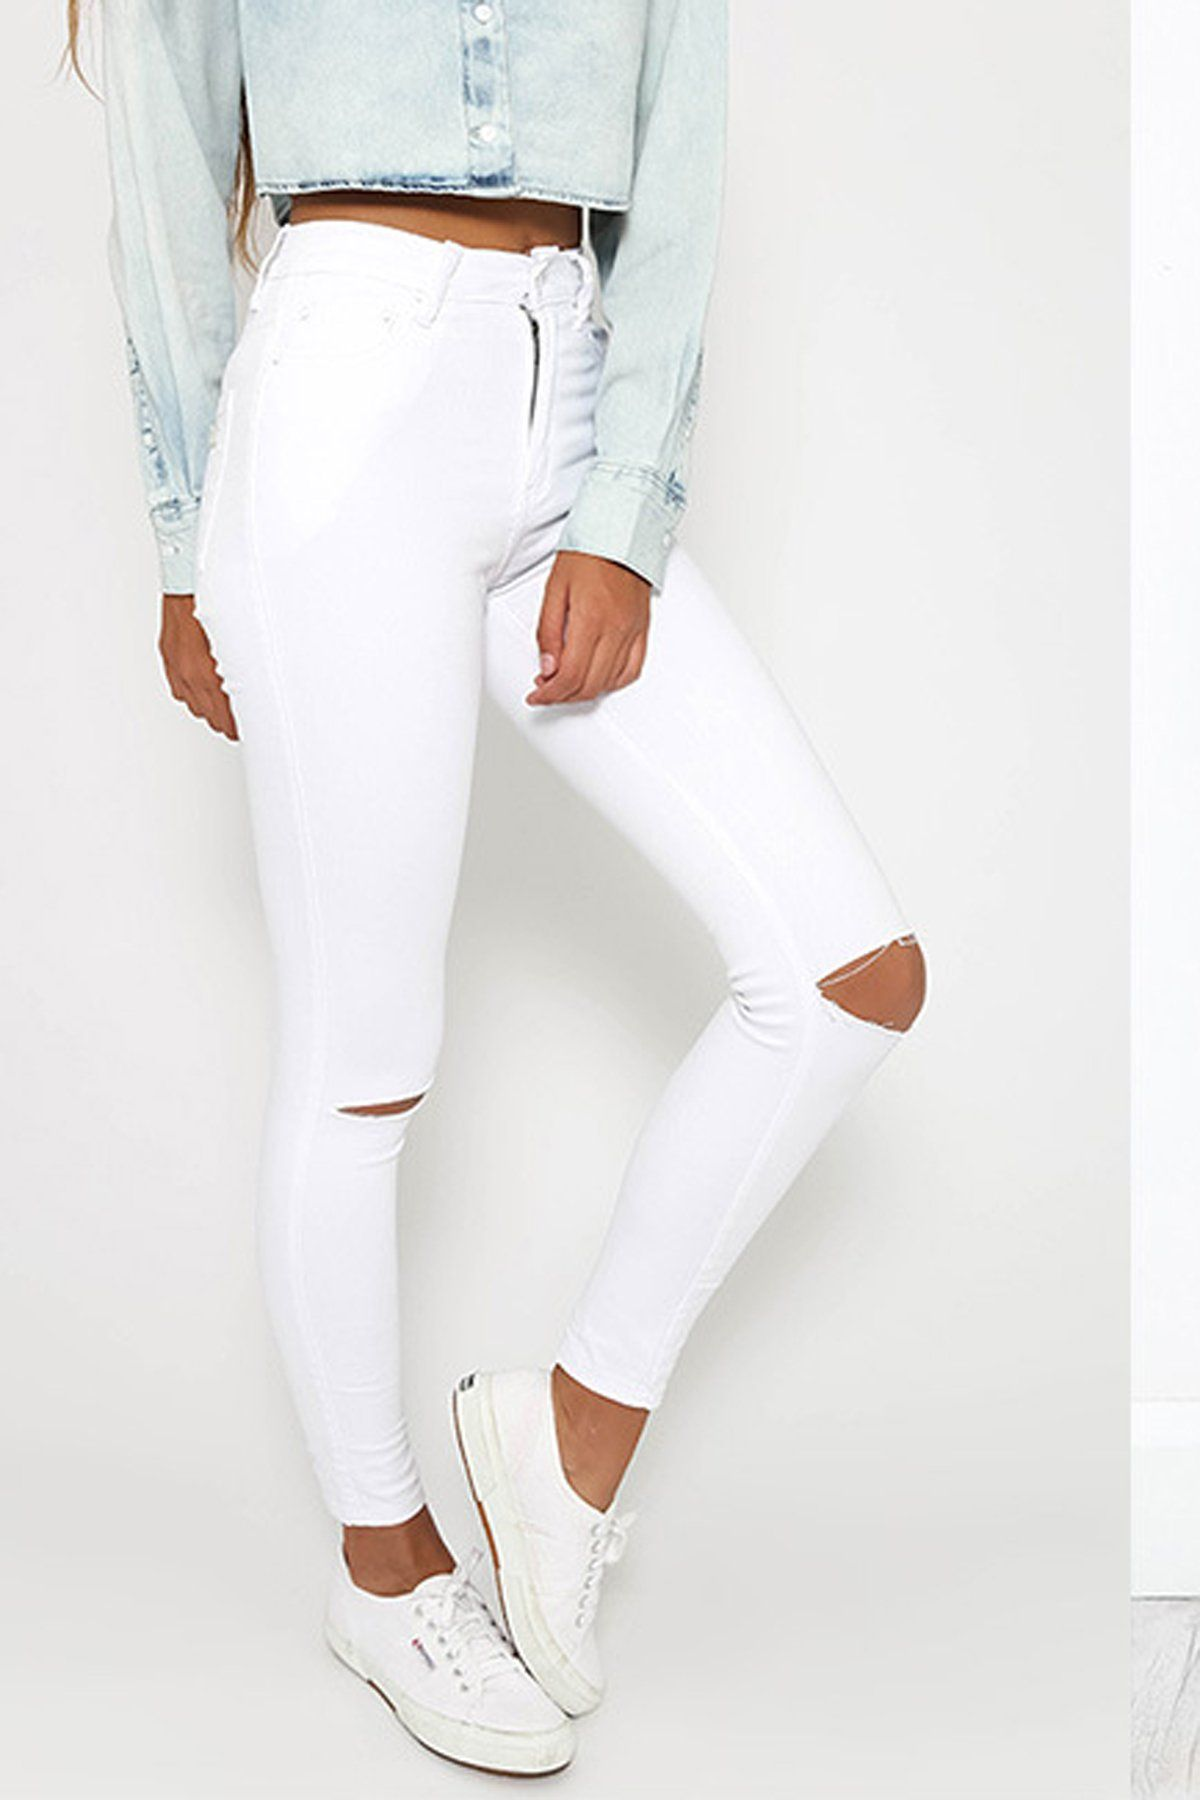 deff5bf455e High Waist Cut Out Holes Solid Color Long Pencil Pants. High Waist Cut Out  Holes Solid Color Long Pencil Pants White Ripped Skinny Jeans ...